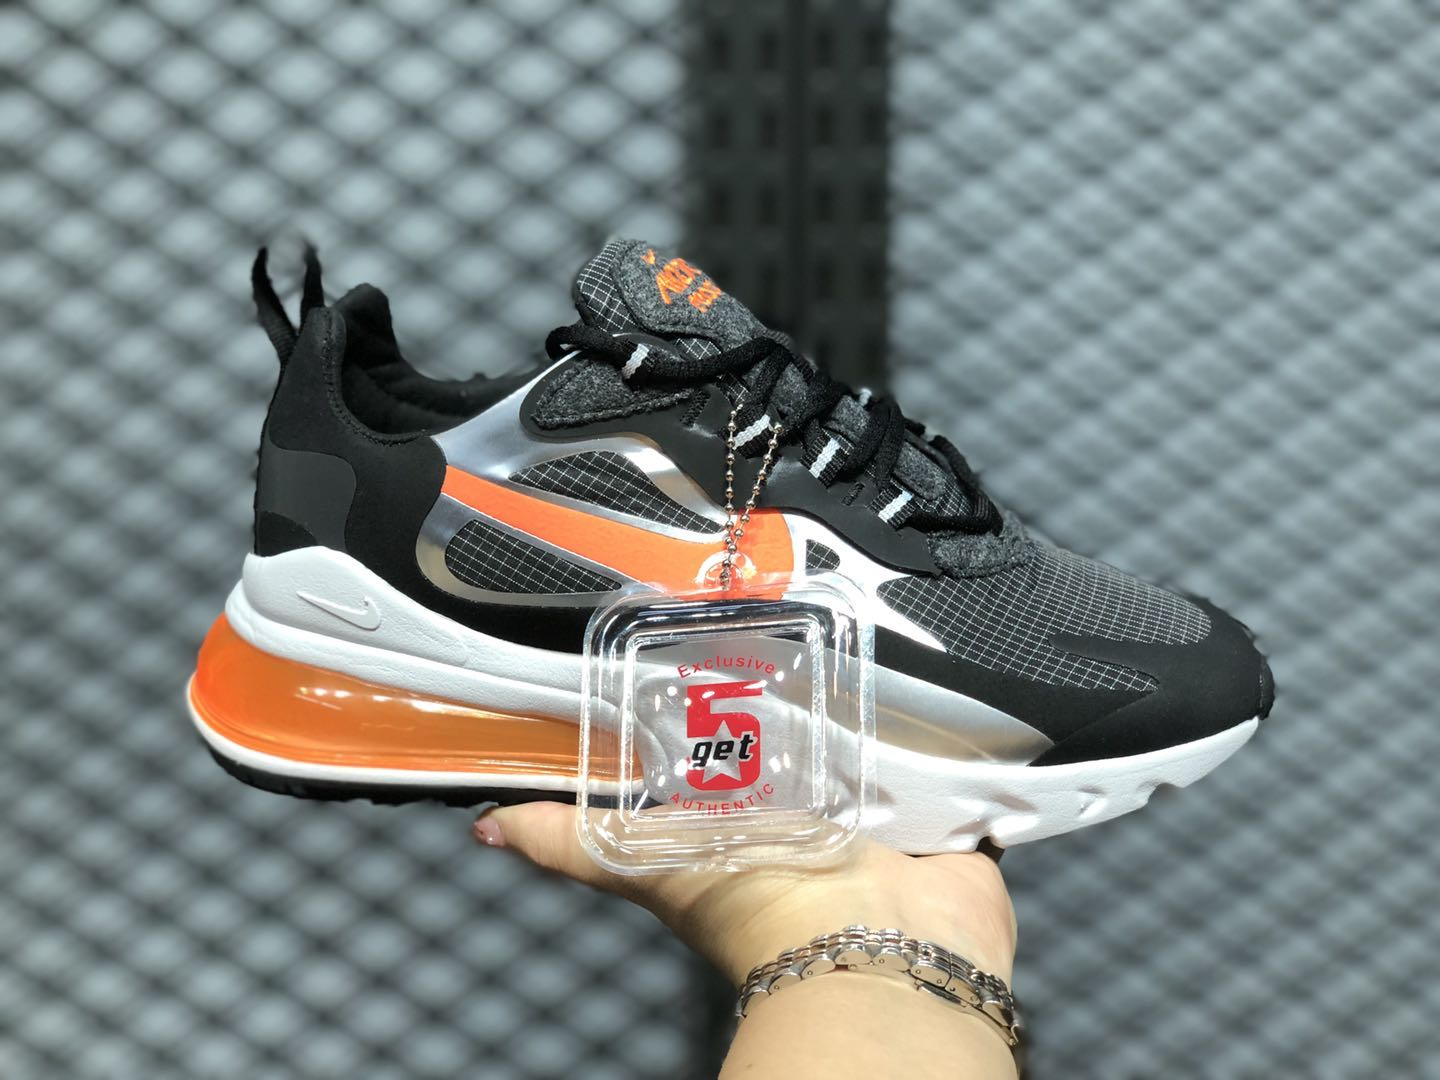 Nike Air Max 270 React Black/Total Orange-Metallic Silver CQ4598-084